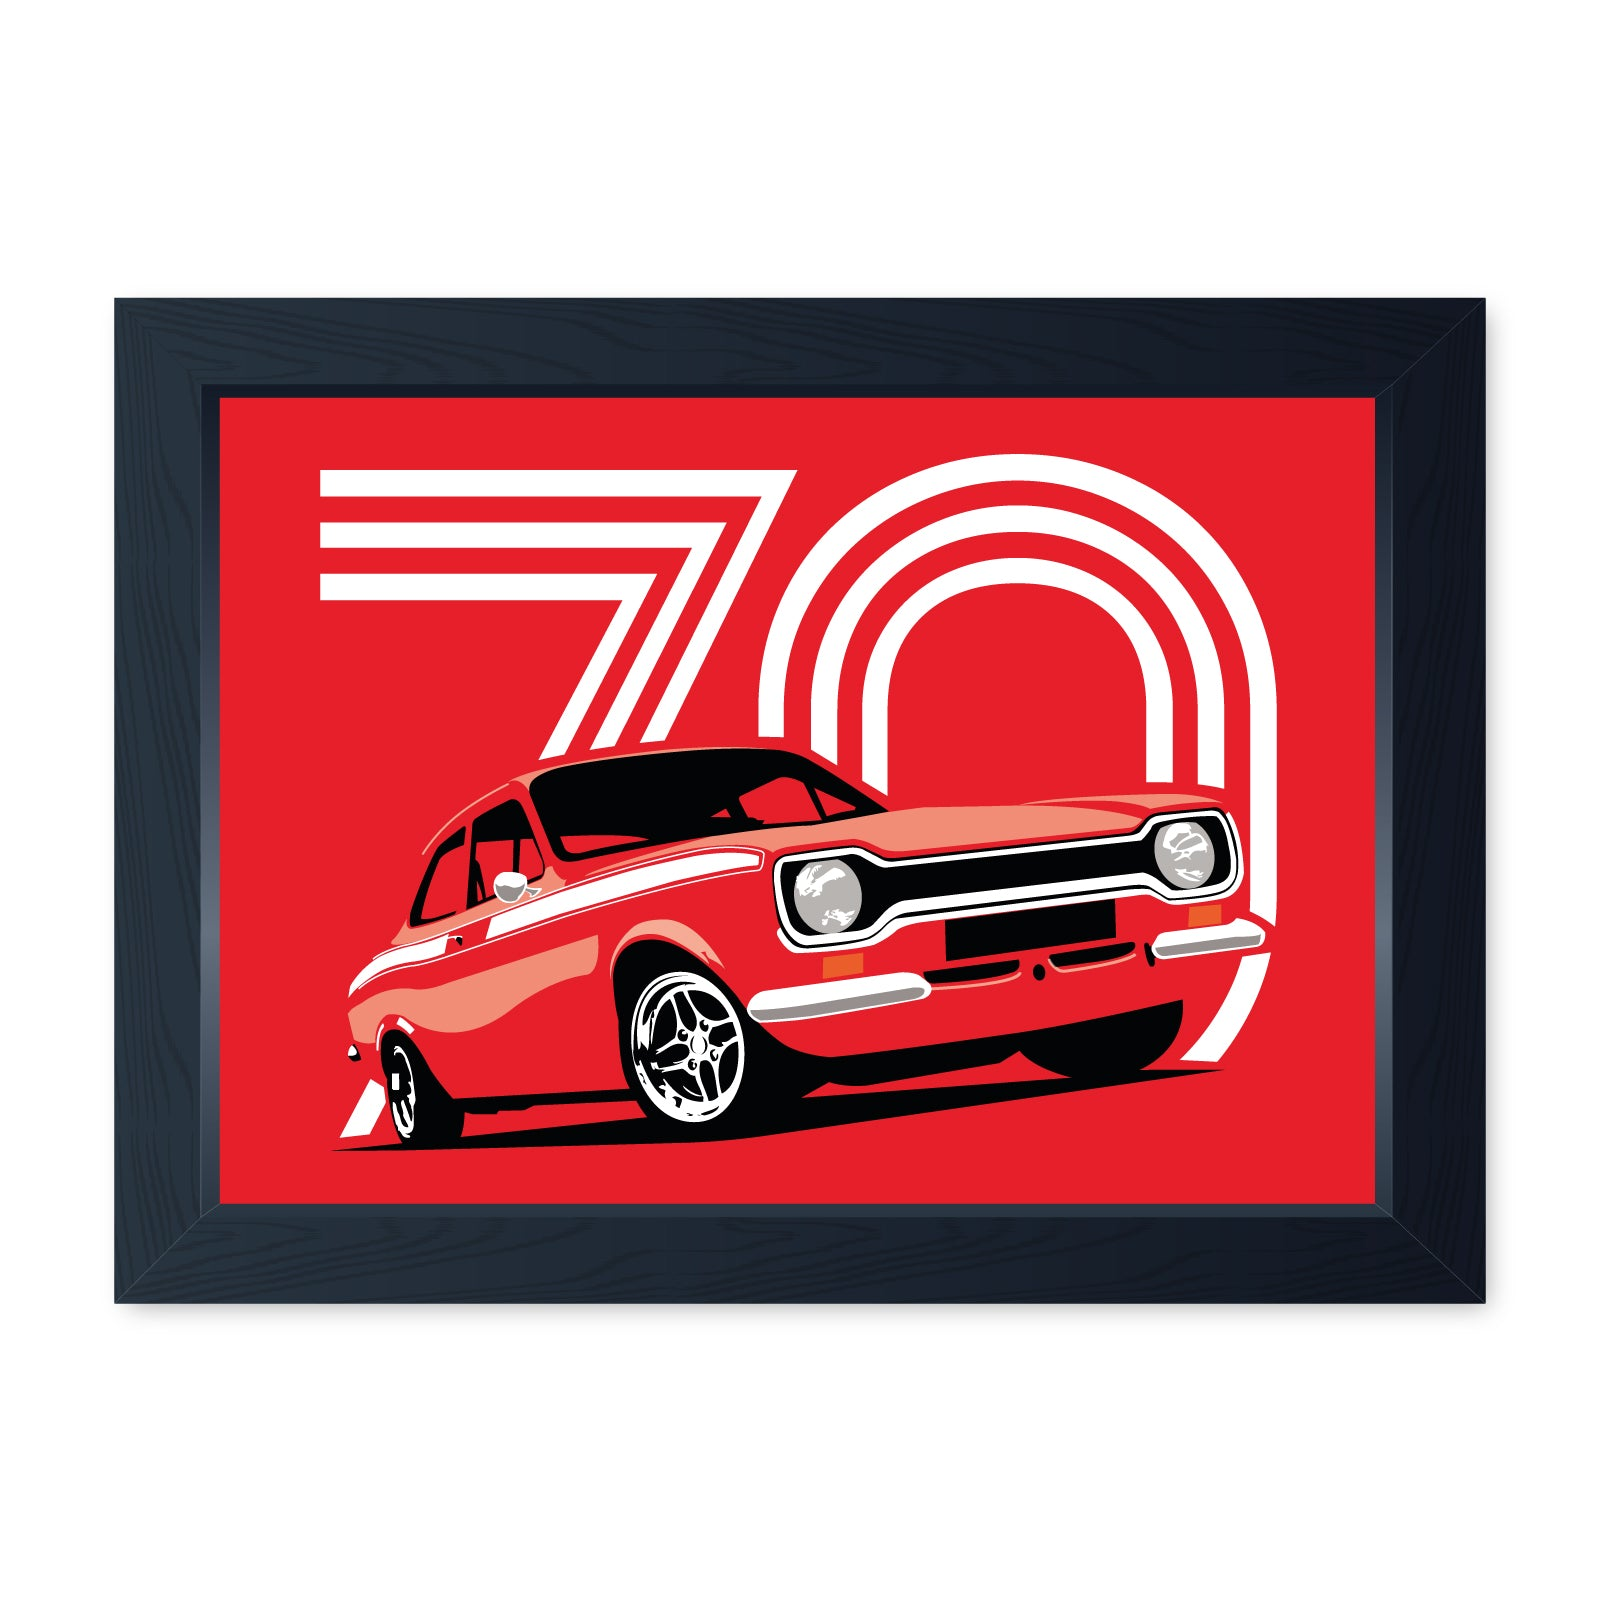 Red Mk1 Escort Mexico, Quality Framed Print - Kitchen Bathroom Man Cave Art